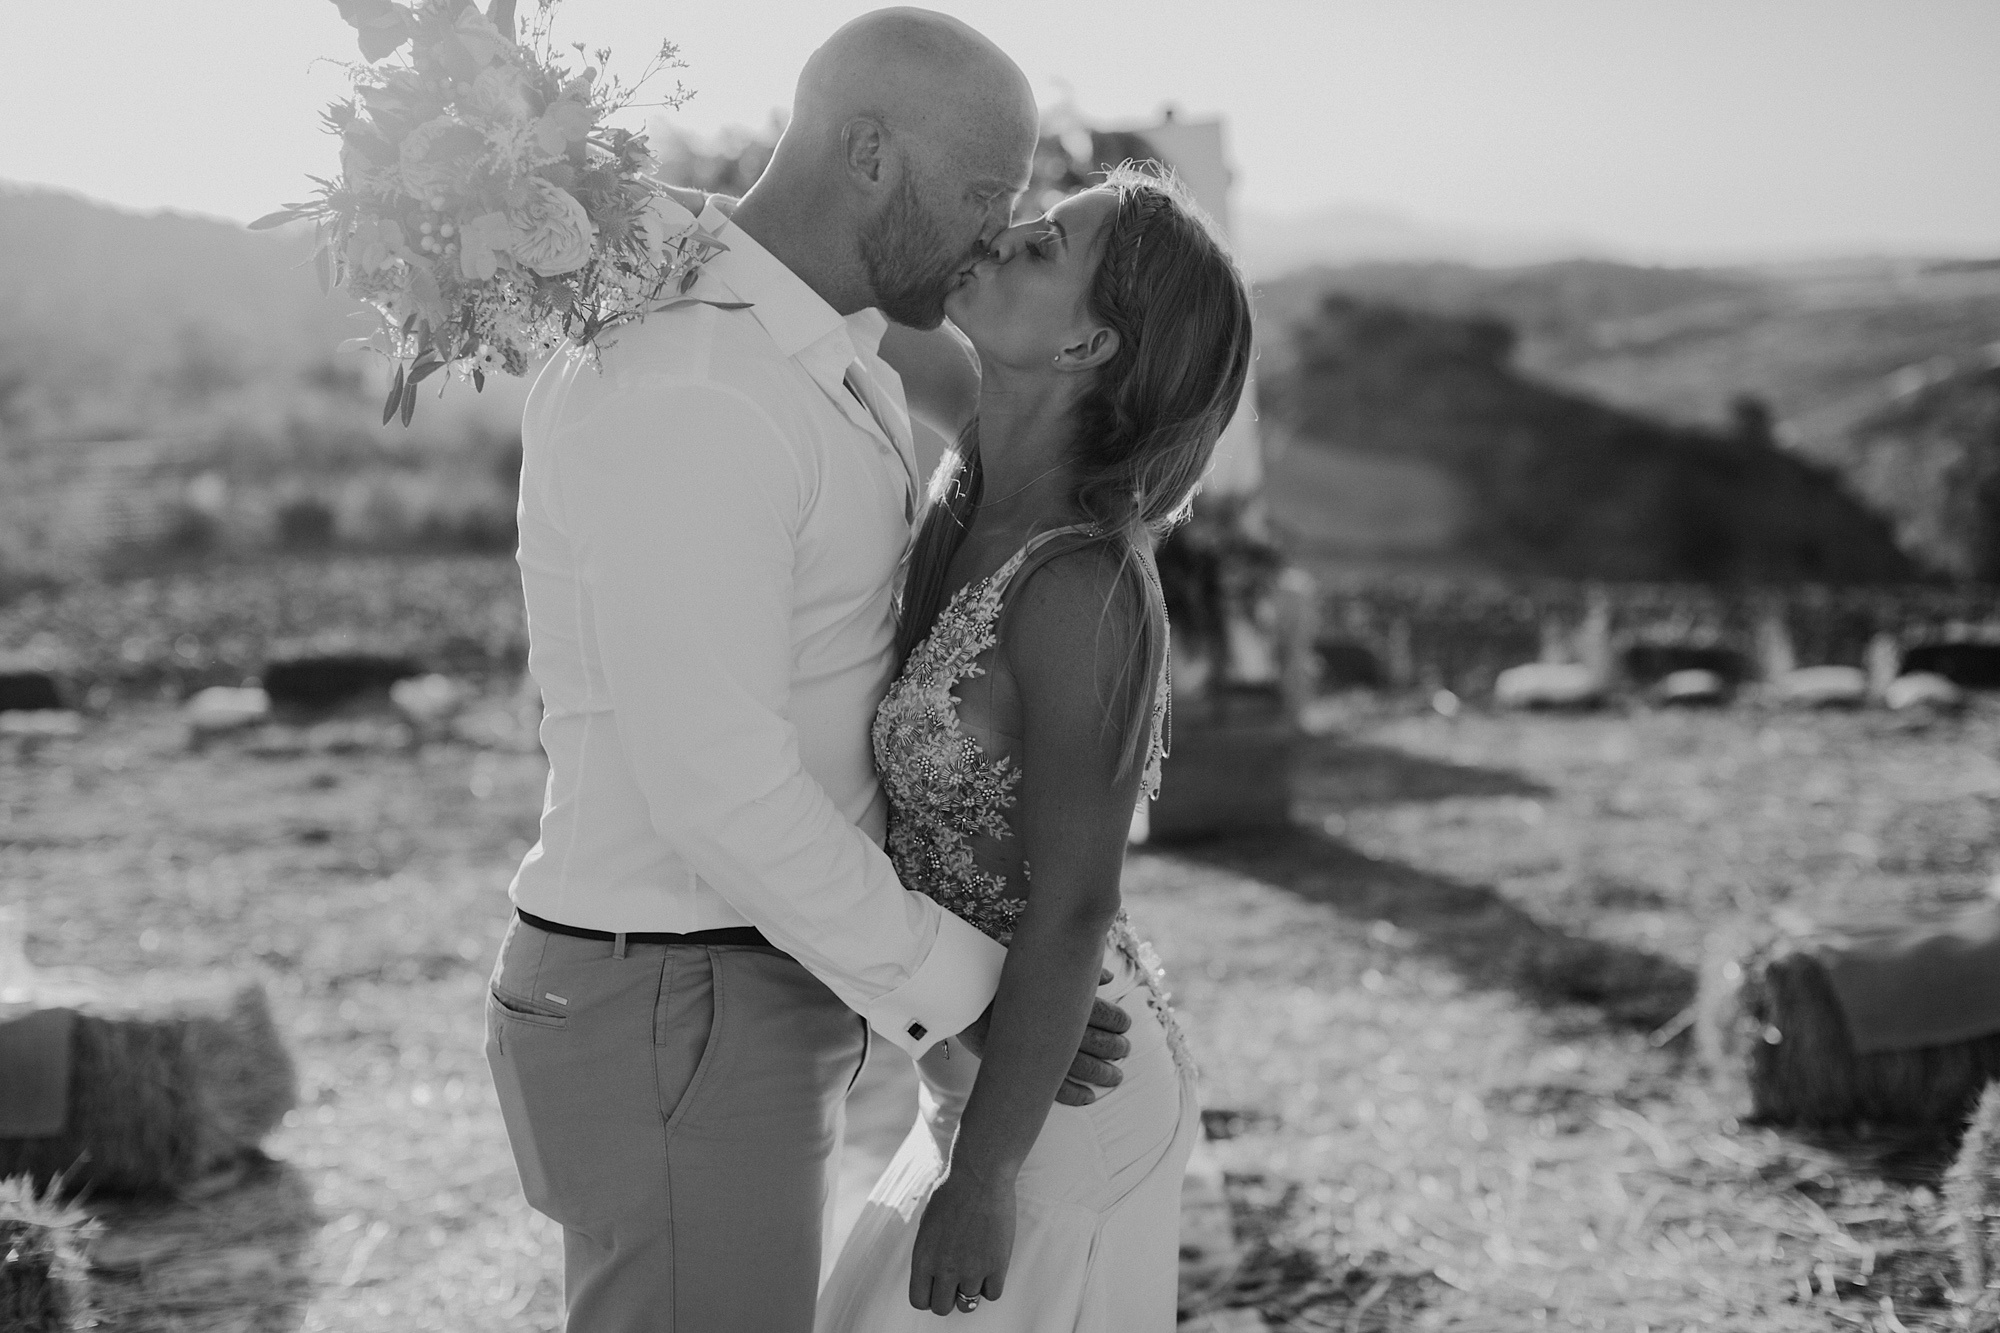 wedding photographer granada, cristina ruiz foto